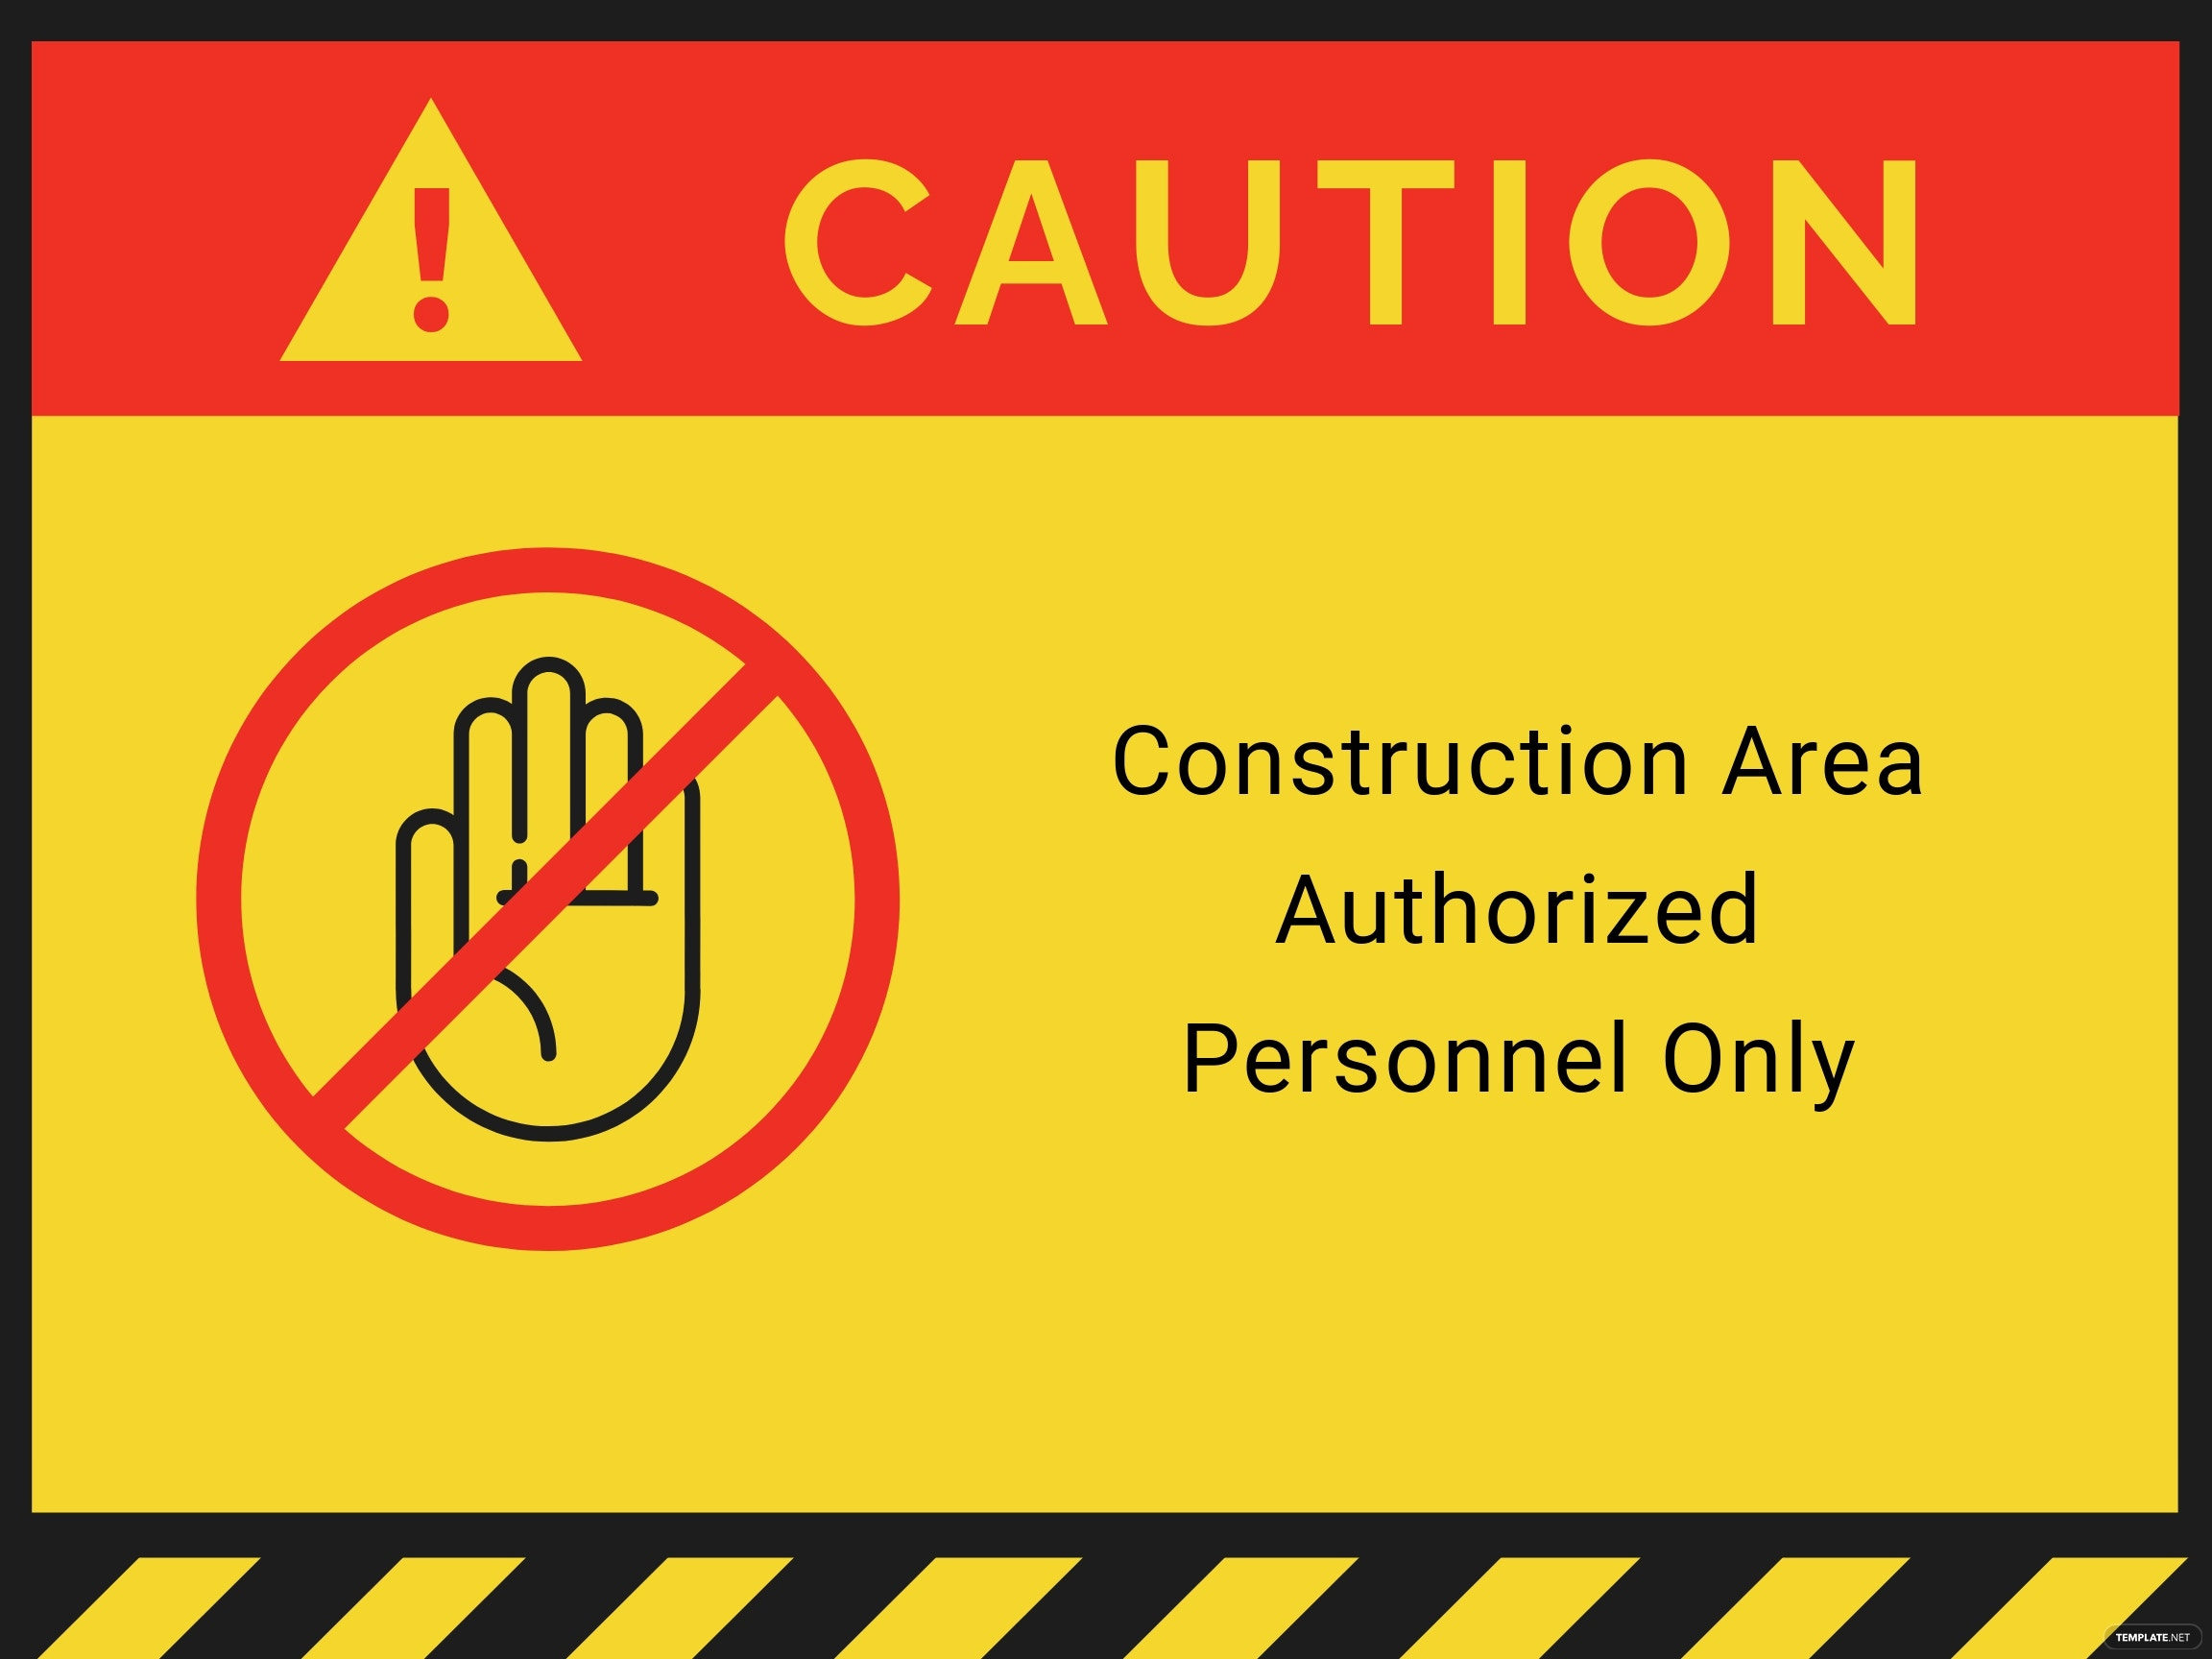 Caution   Construction Area Authorized Personnel Only Sign Template.jpe